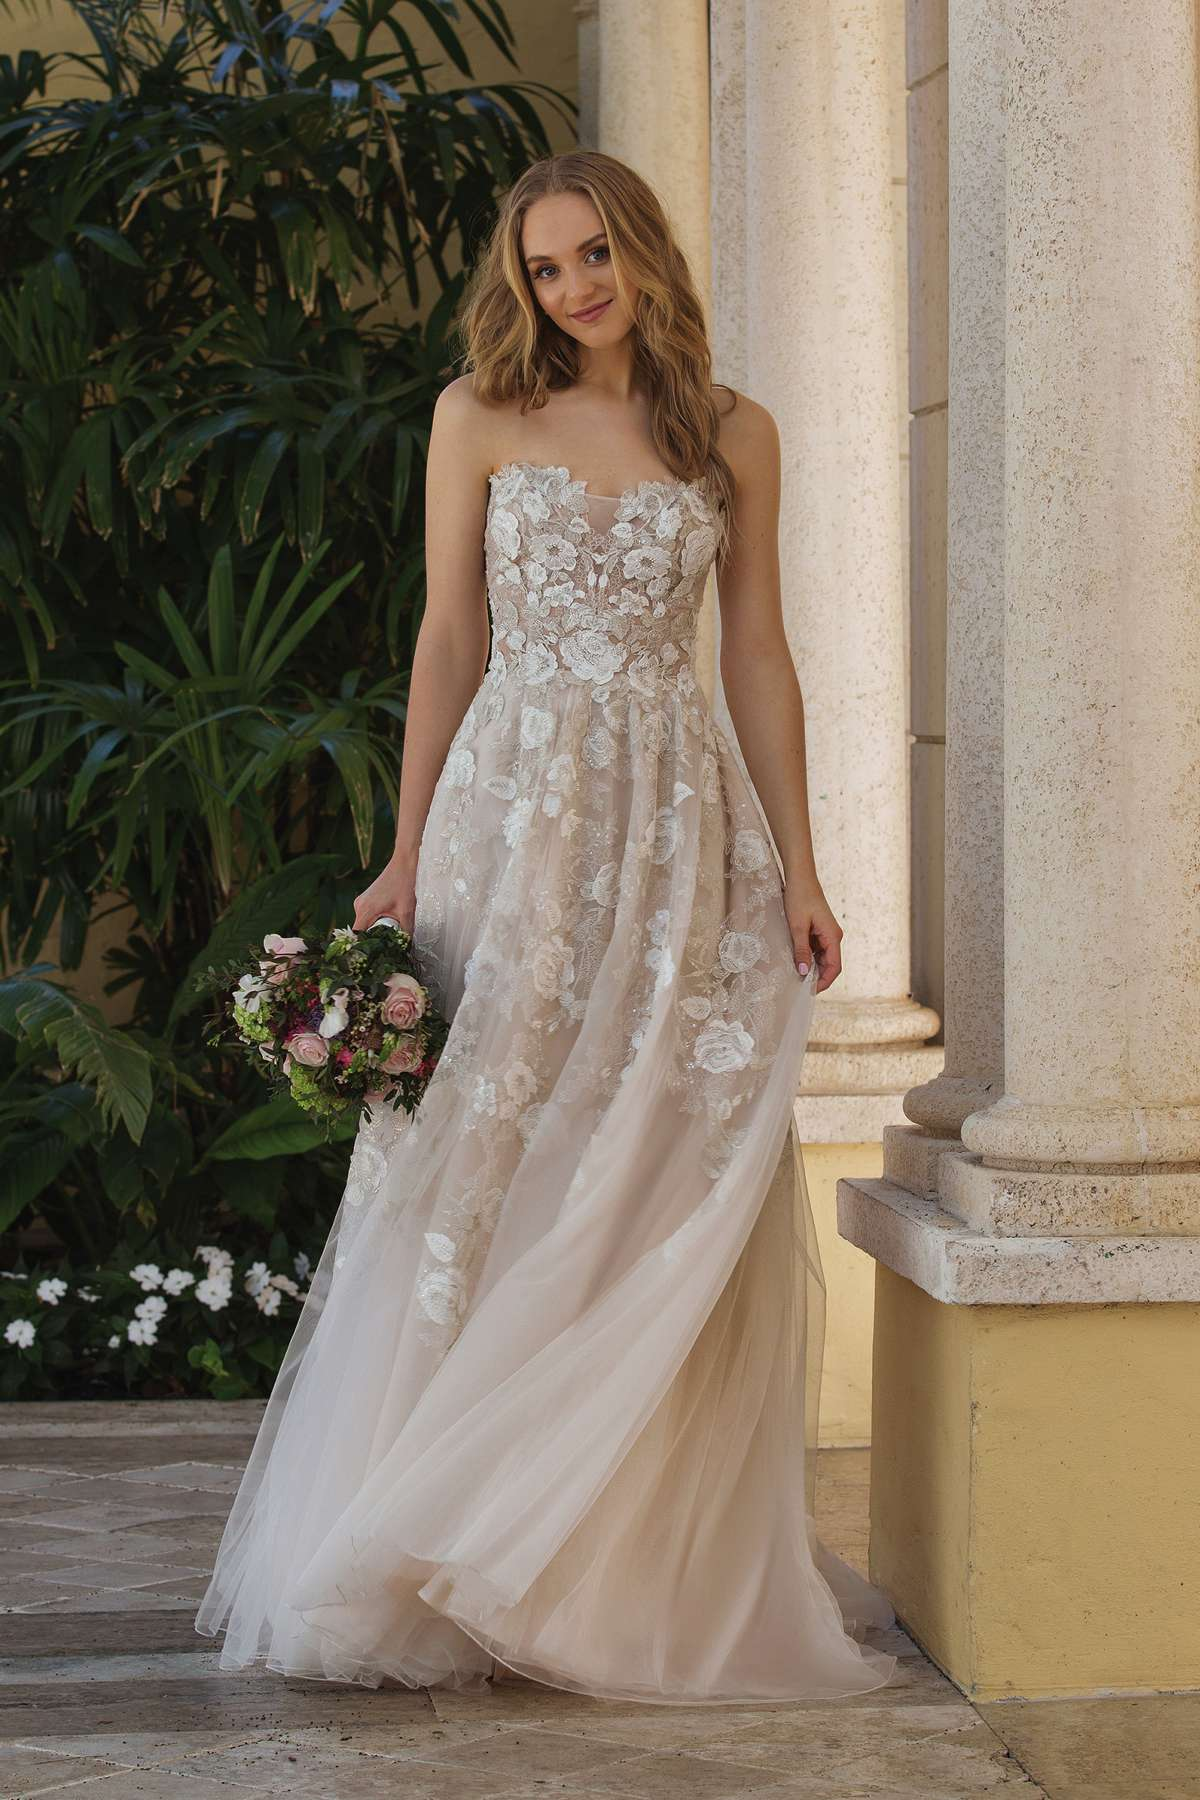 The Stunning 2019 Collection From Sincerity Bridal